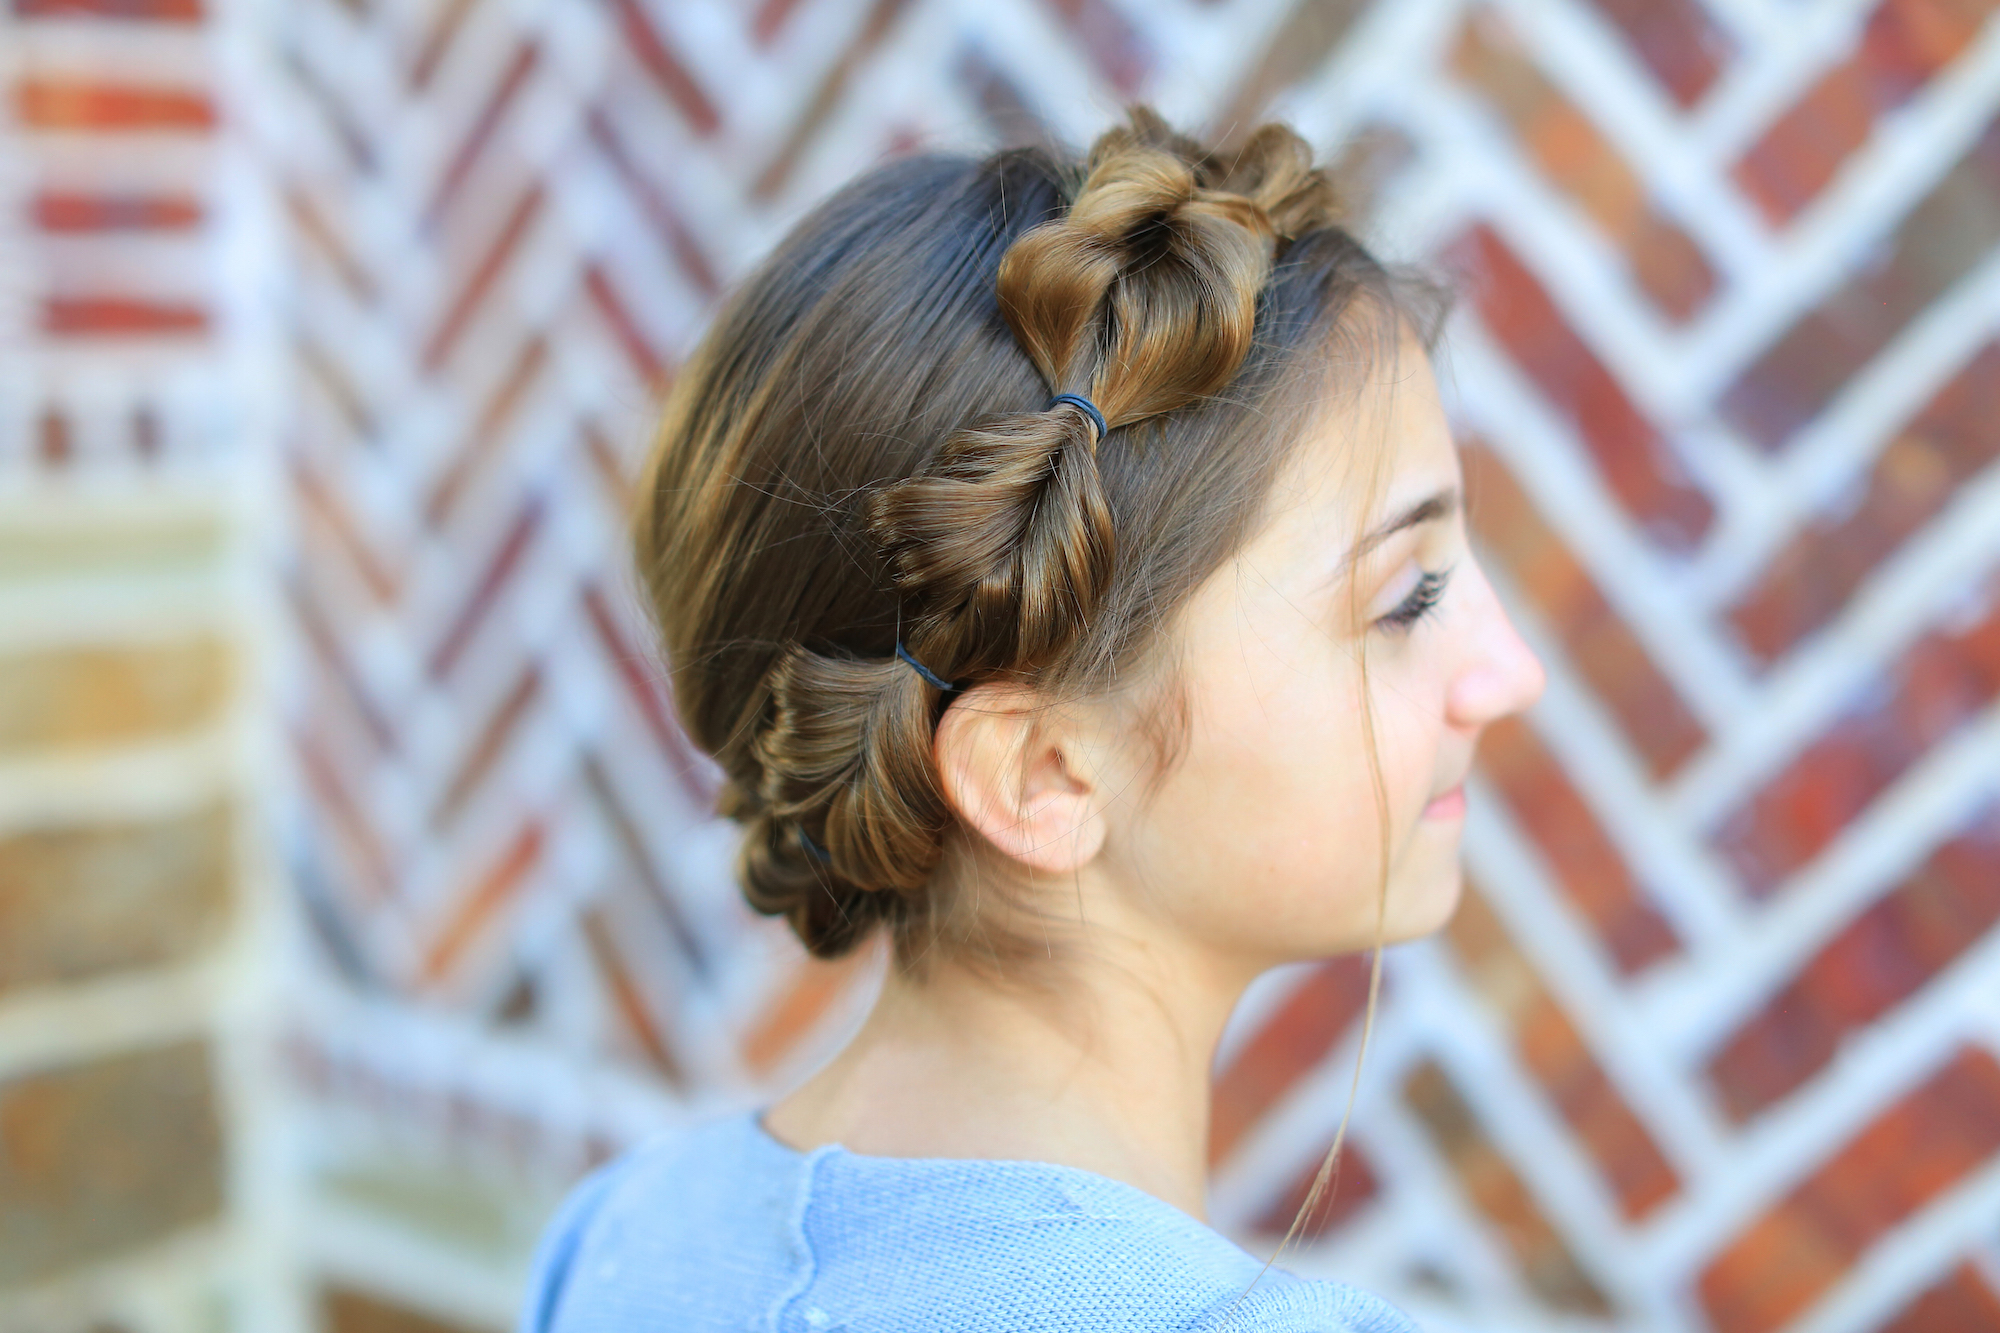 Cute Girls Throughout Recent Fishtail Crown Braided Hairstyles (View 3 of 20)